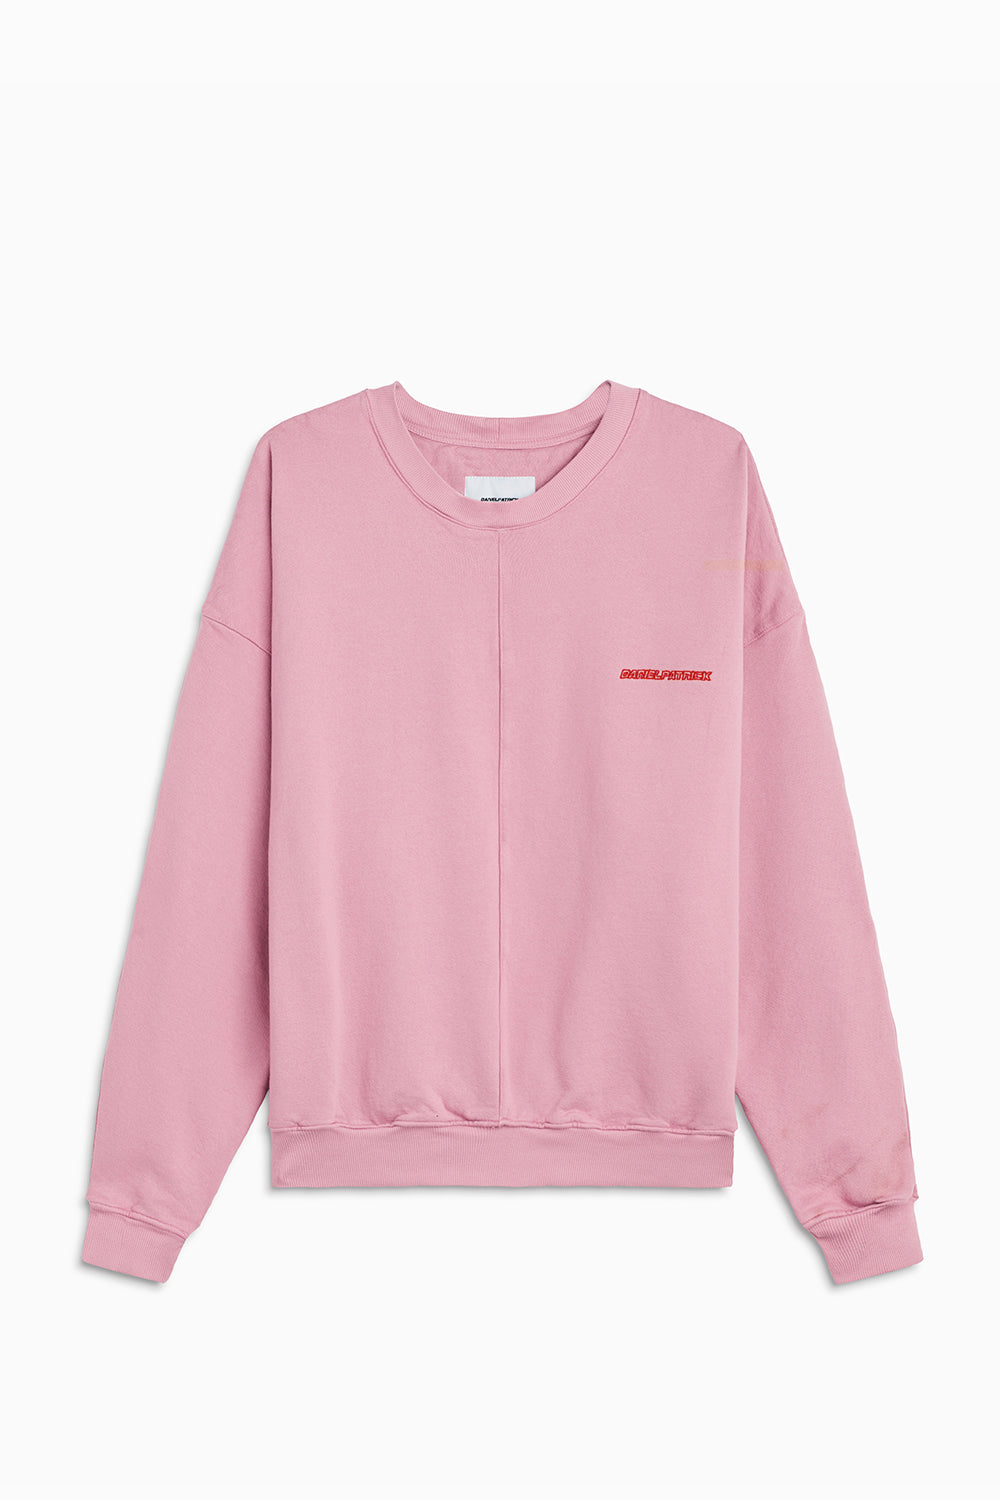 pullover crew neck sweatshirt / blush + red